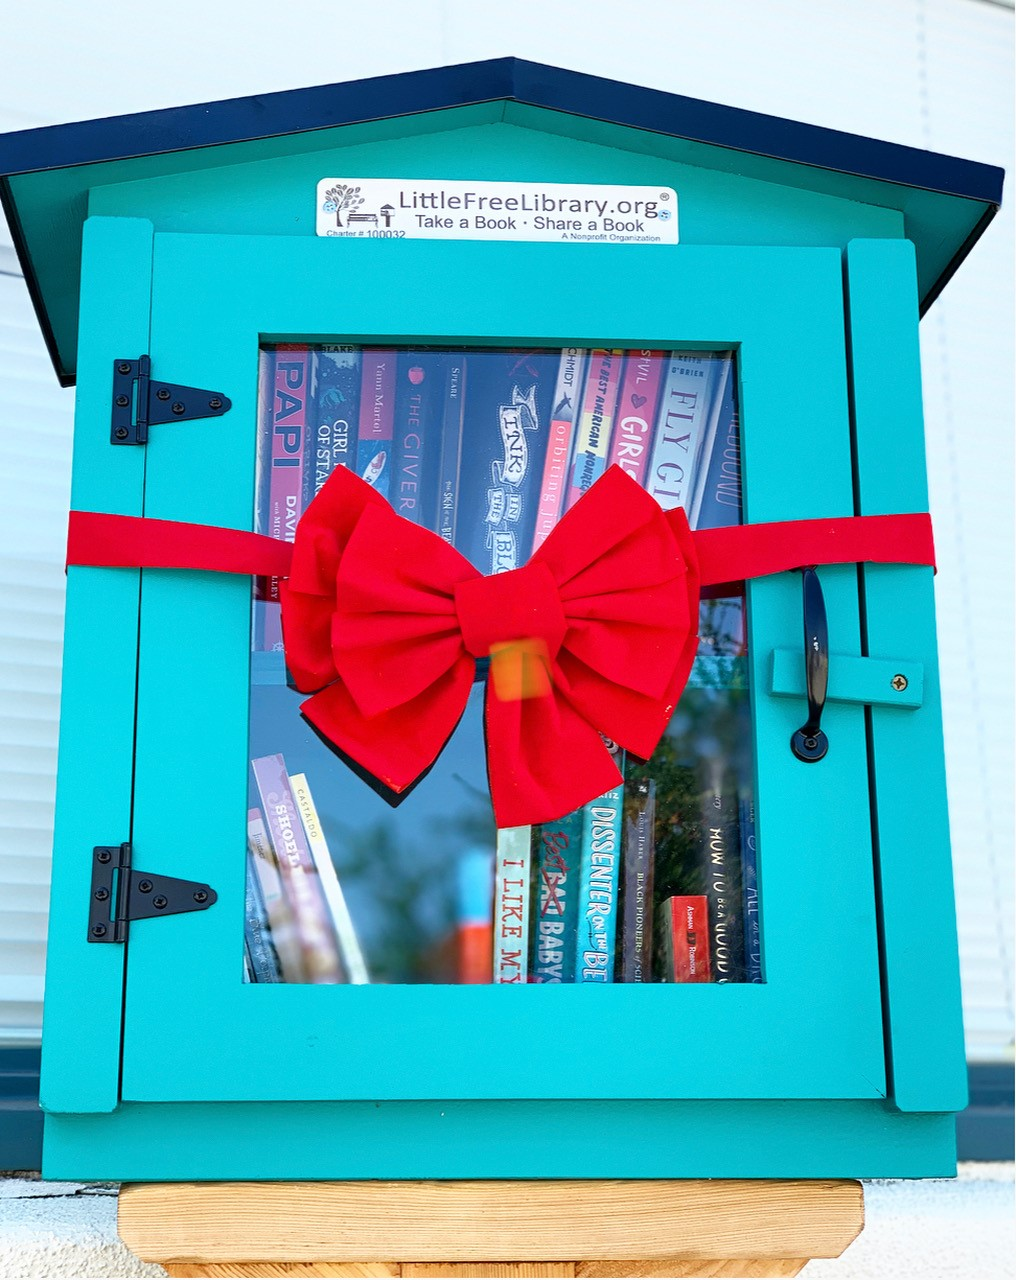 Little Free Library Grand Opening Celebrates Literacy